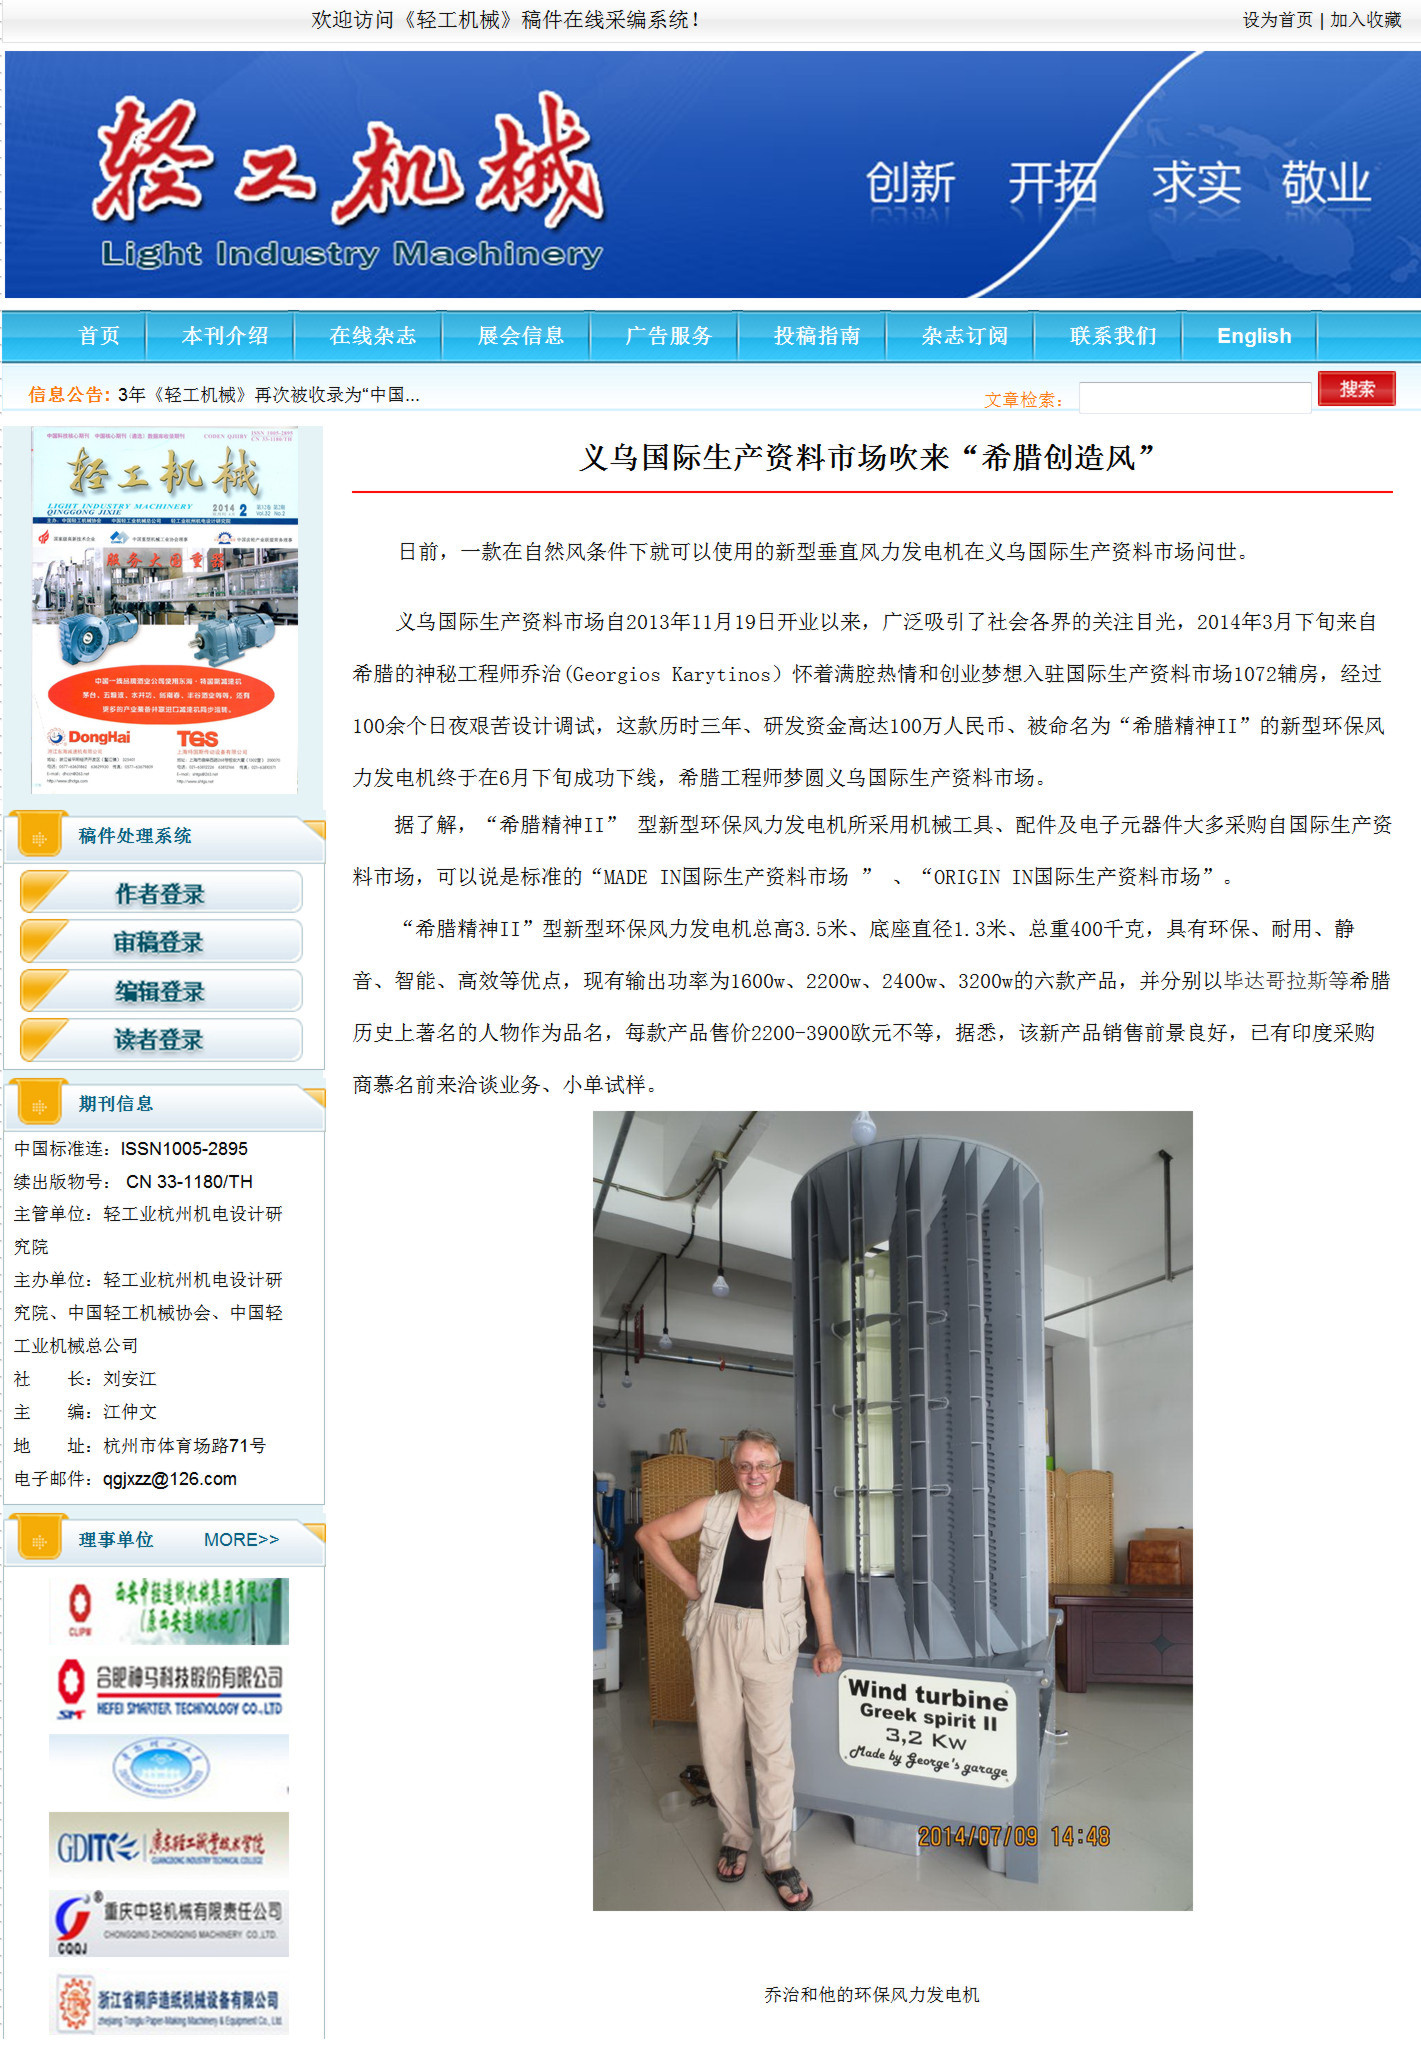 CHINESE NEWS FOR MR GEORGIOS KARYTINOS